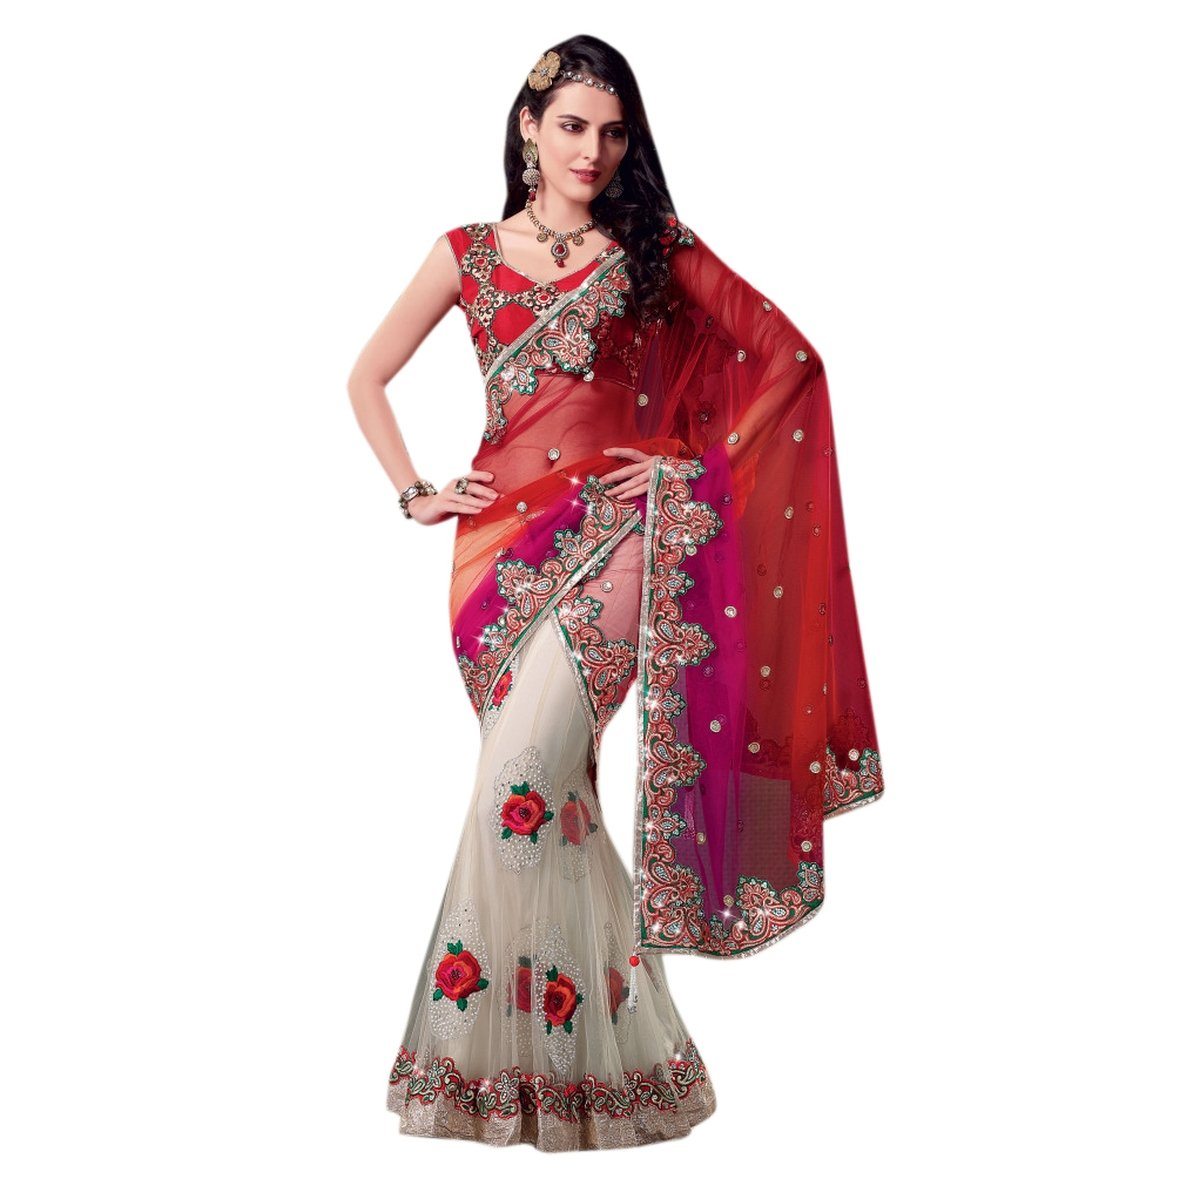 Triveni Women's Indian Off-White Net Embroidered Wedding Saree by Triveni (Image #1)